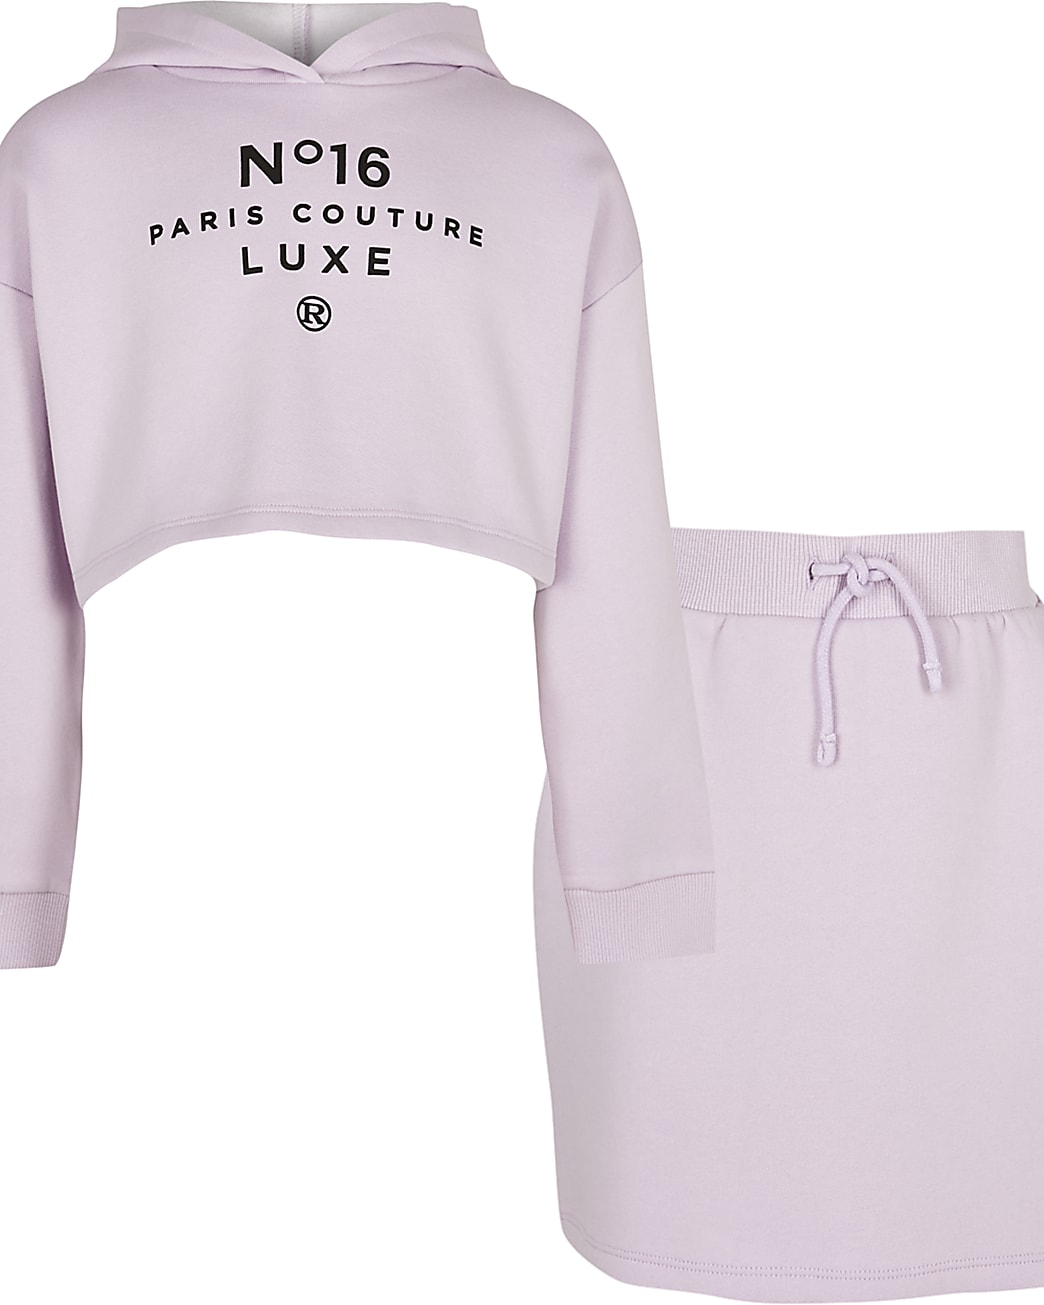 Girls purple 'Paris Couture' skirt outfit